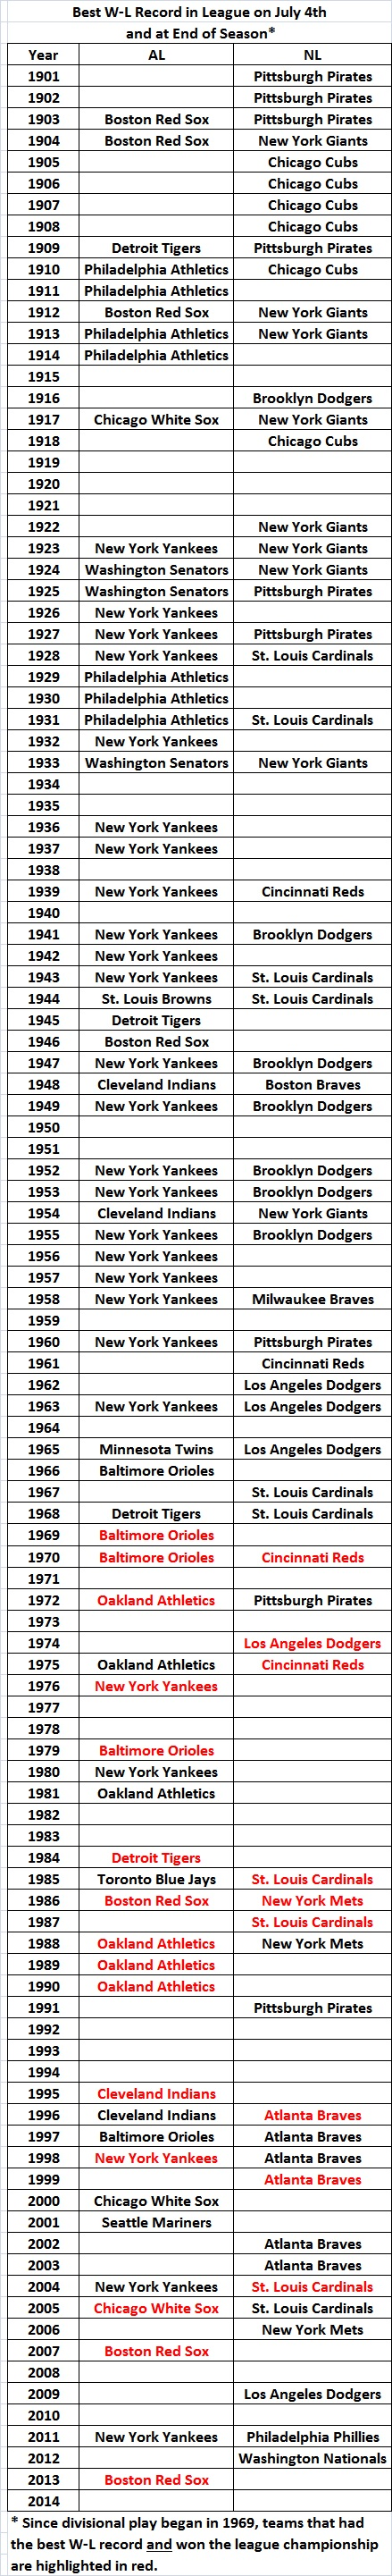 Teams with best record on 4th of July and end of season